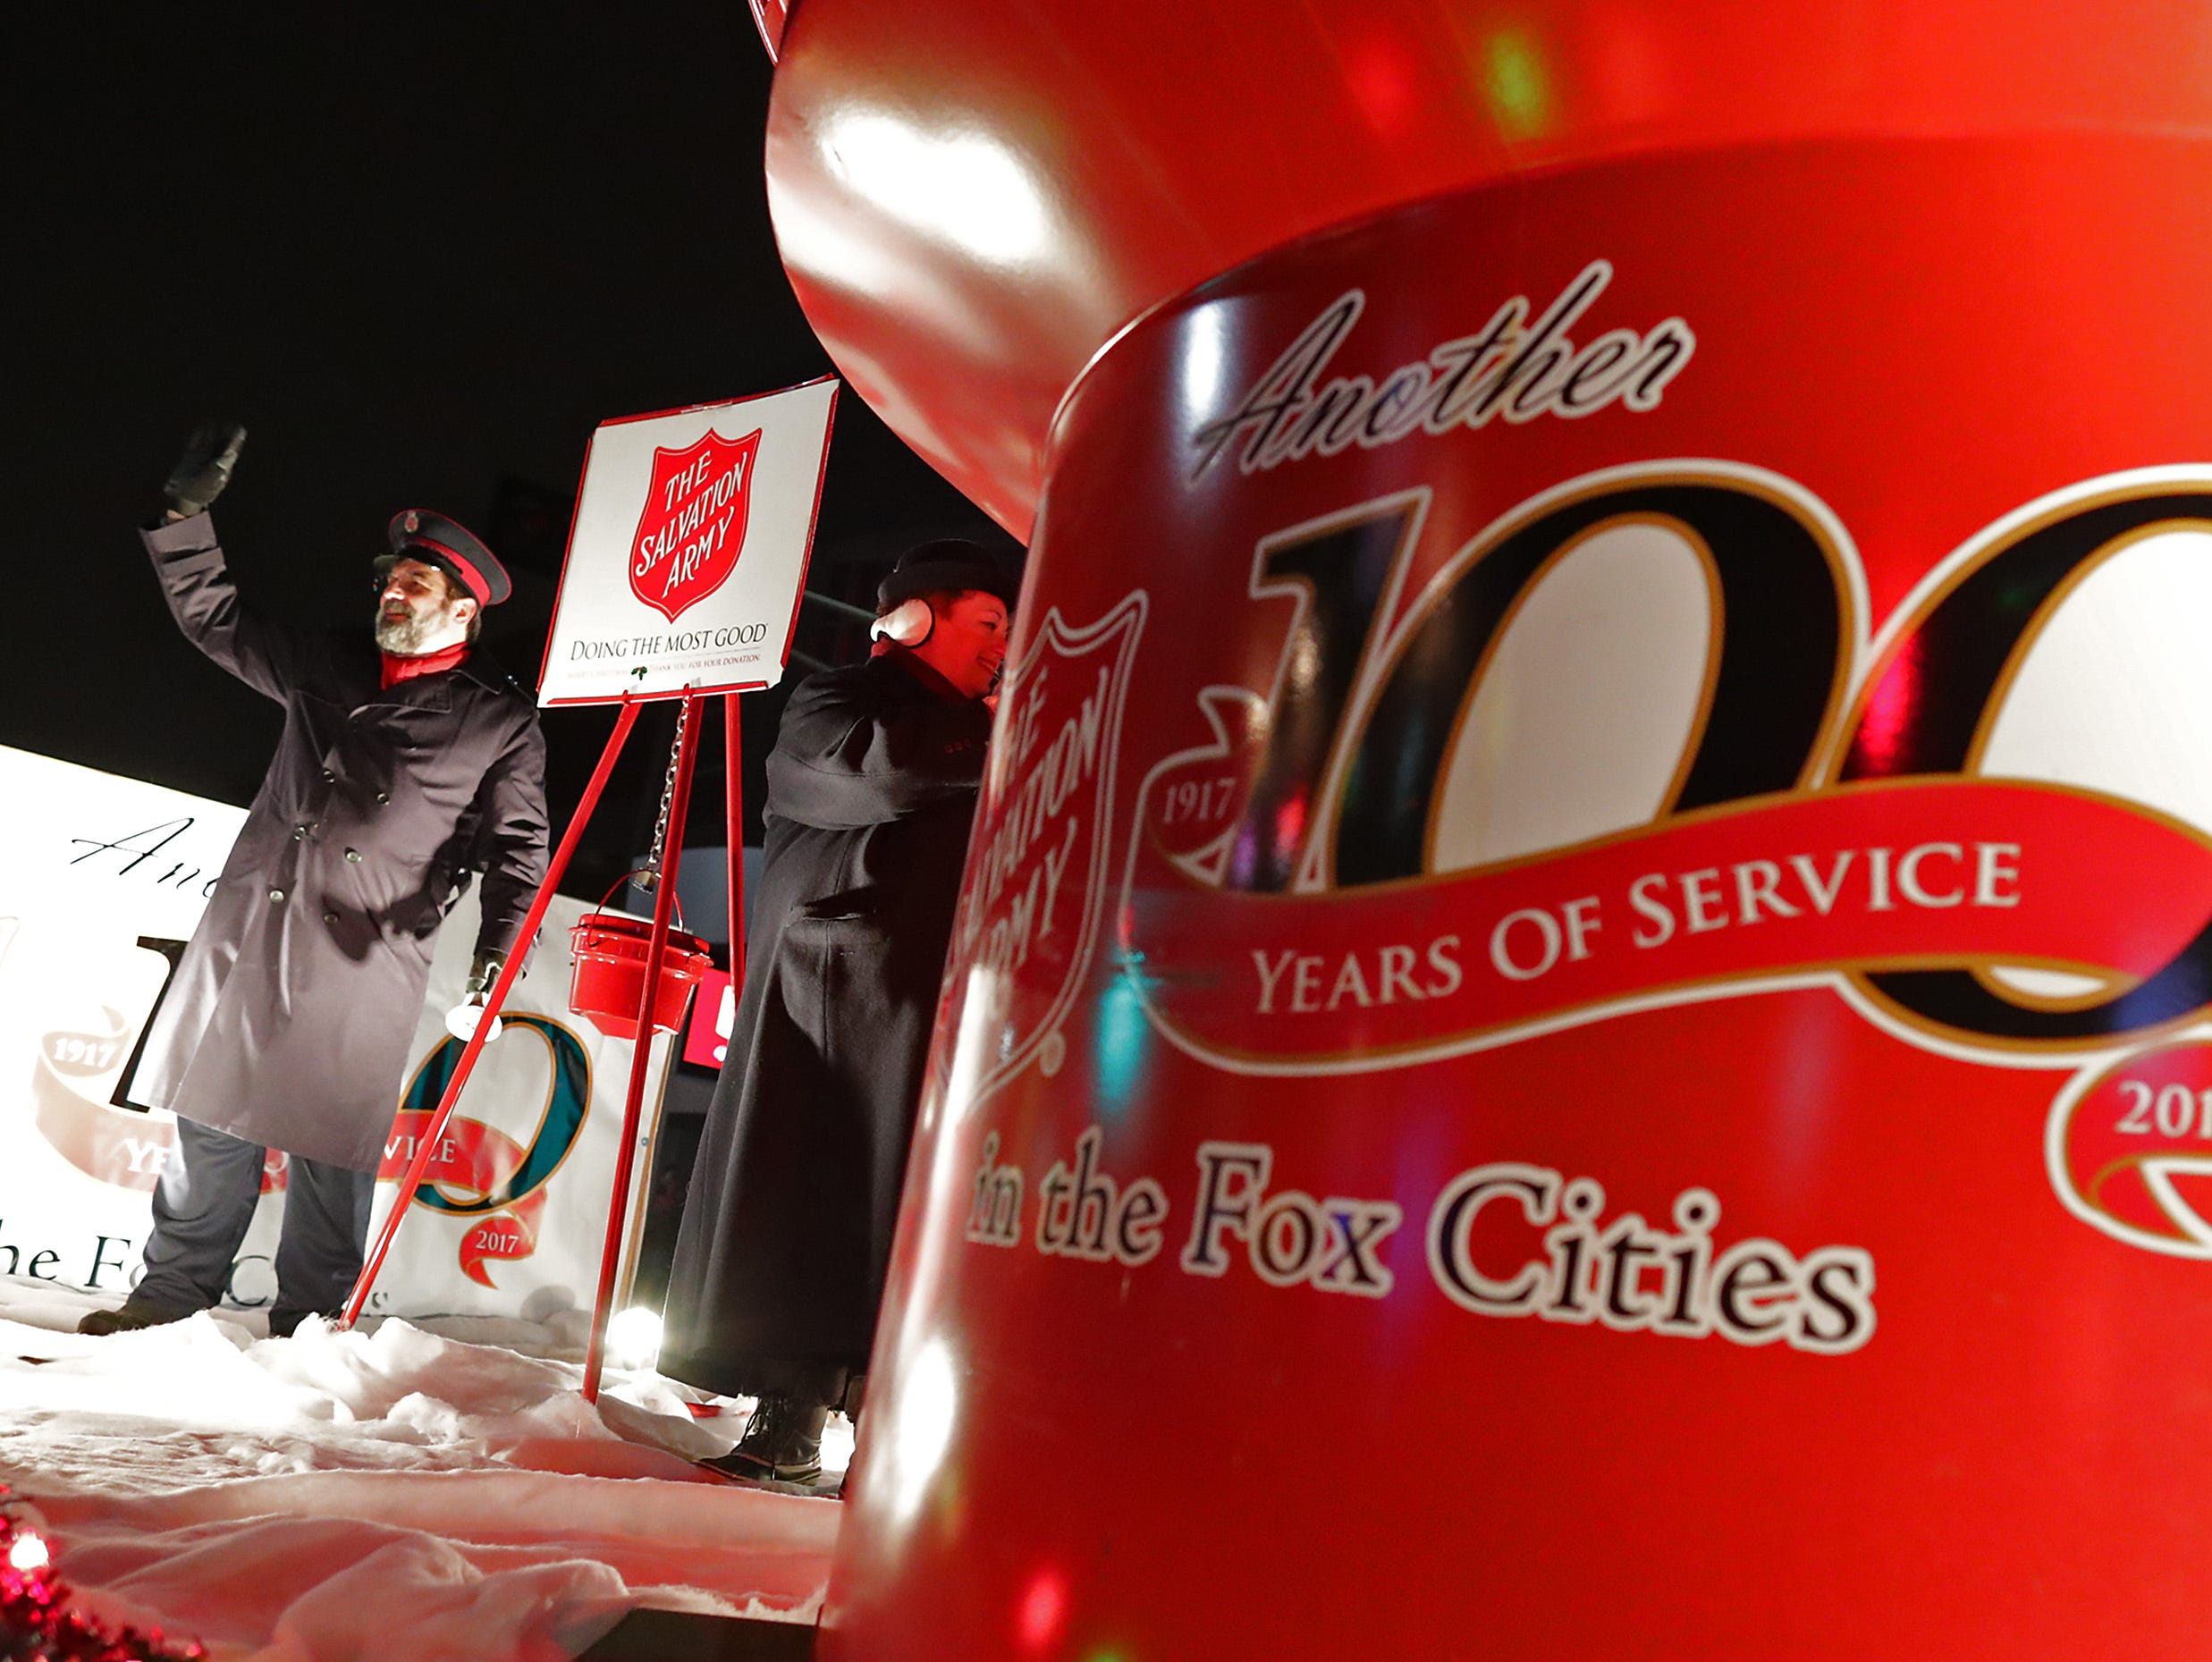 """The Salvation Army float during the 48th Annual Downtown Appleton Christmas Parade on Tuesday, Nov. 20, 2018 in Appleton, Wis. This year's theme was """"Home for the Holidays."""" Wm. Glasheen/USA TODAY NETWORK-Wisconsin."""